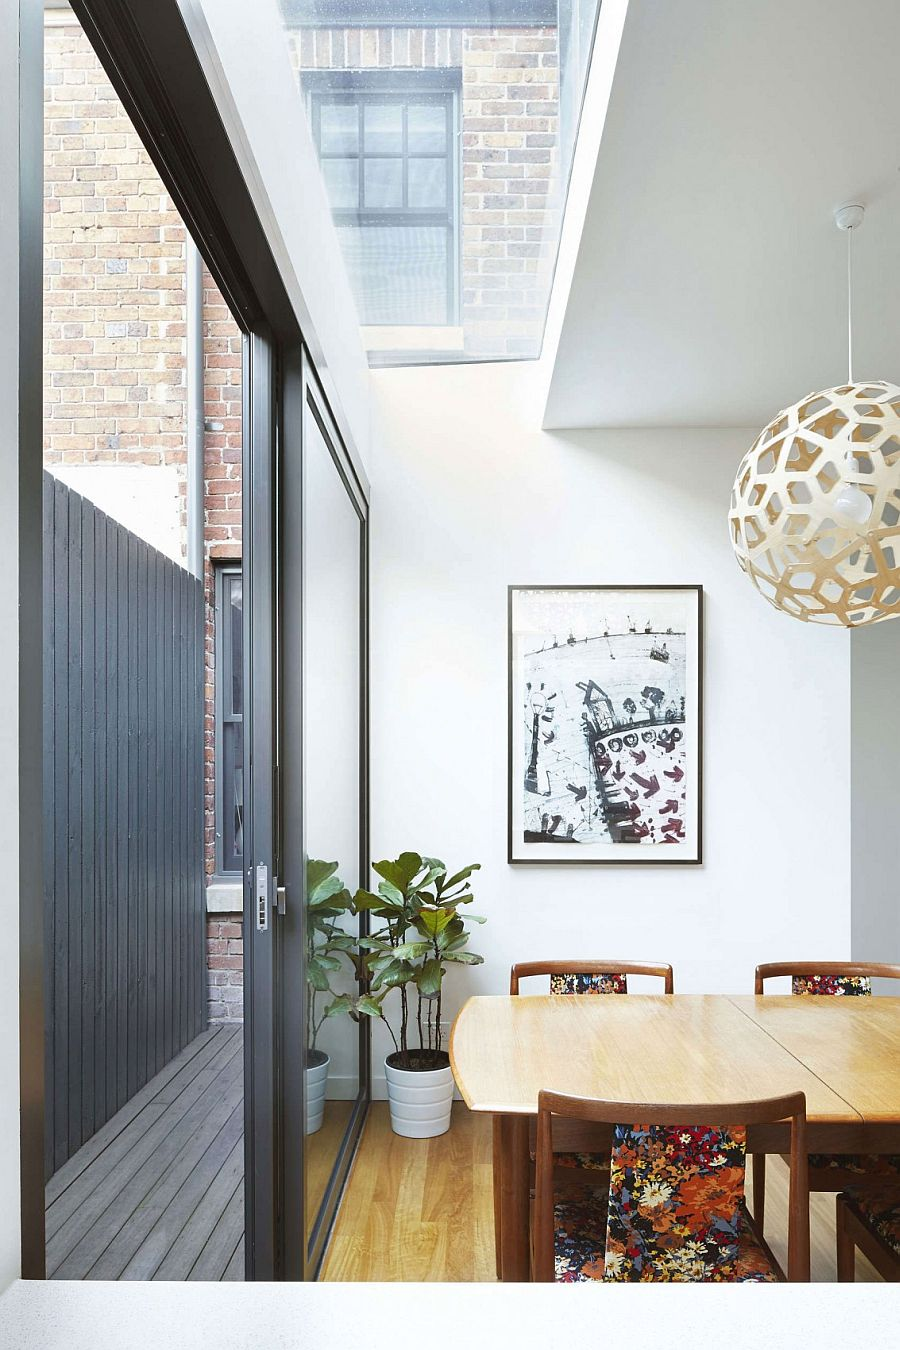 Clever skylight design brings natural light into the dining room